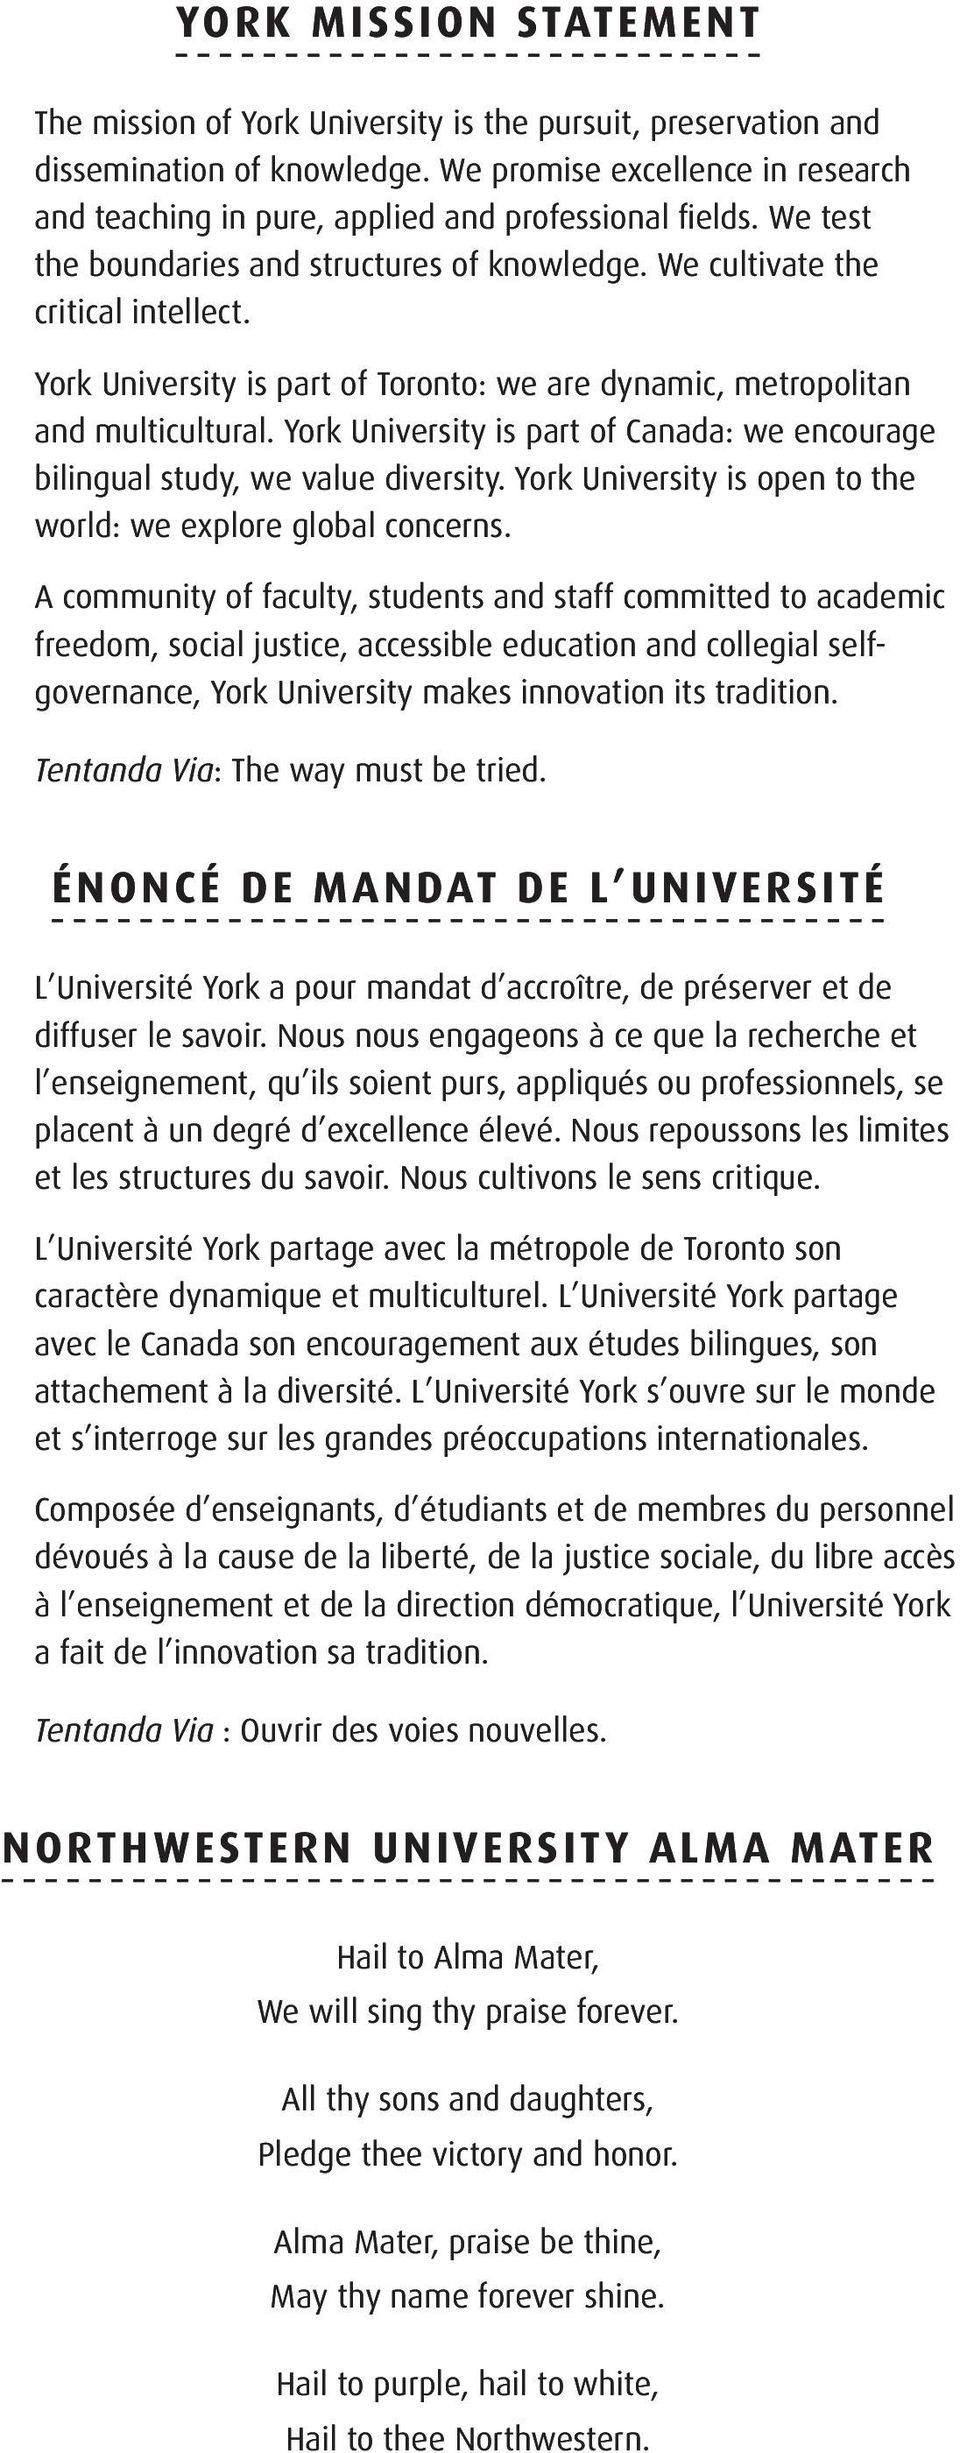 York University is part of Toronto: we are dynamic, metropolitan and multicultural. York University is part of Canada: we encourage bilingual study, we value diversity.